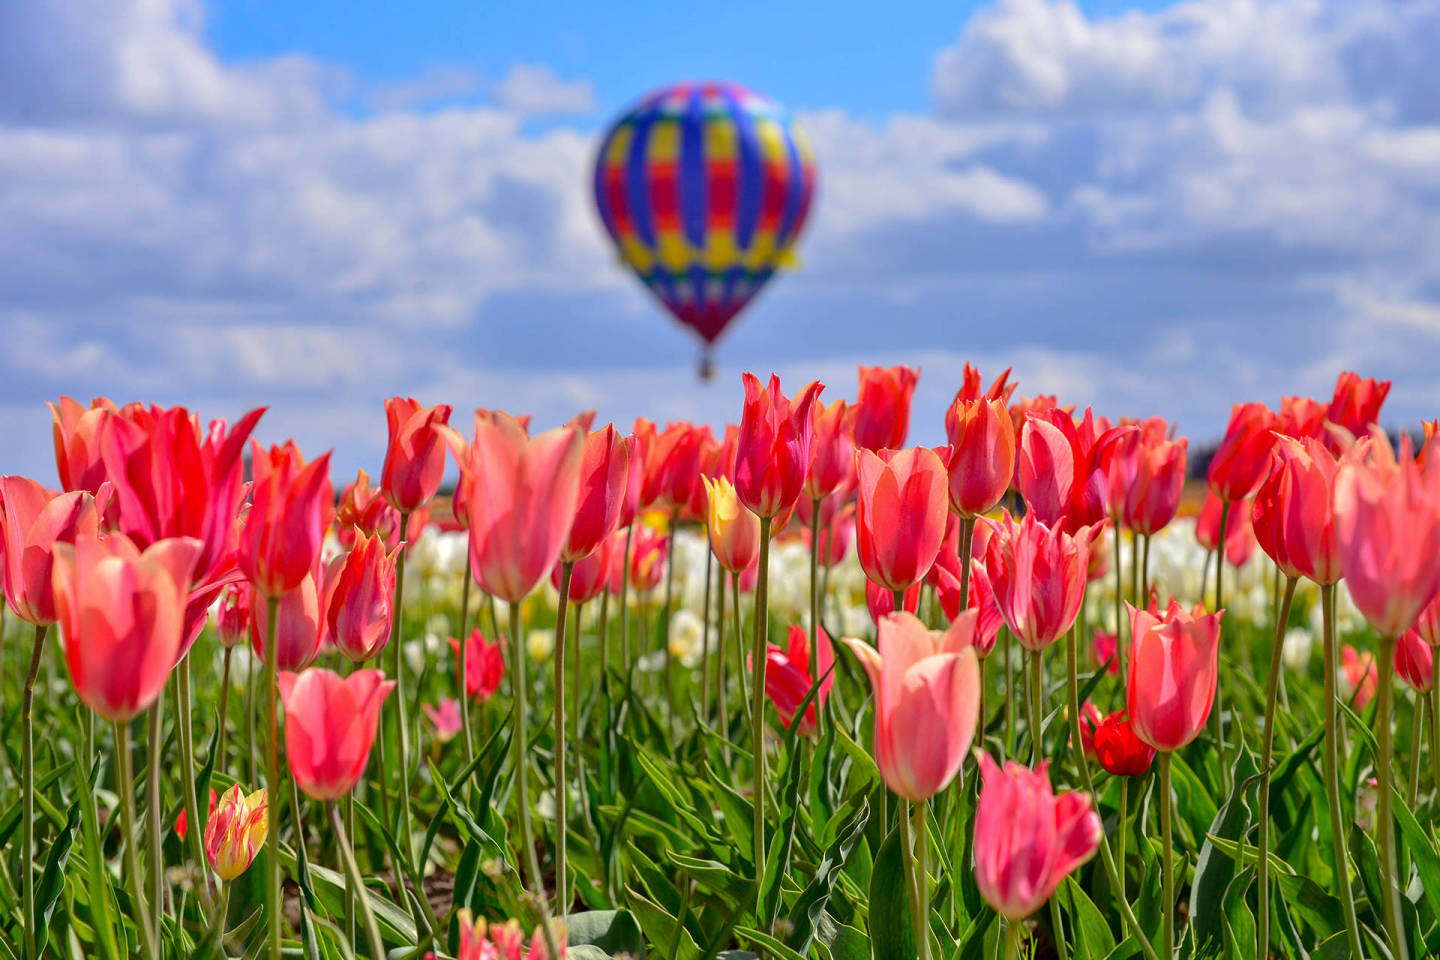 Hot air balloon at Wooden Shoe Tulip Fest